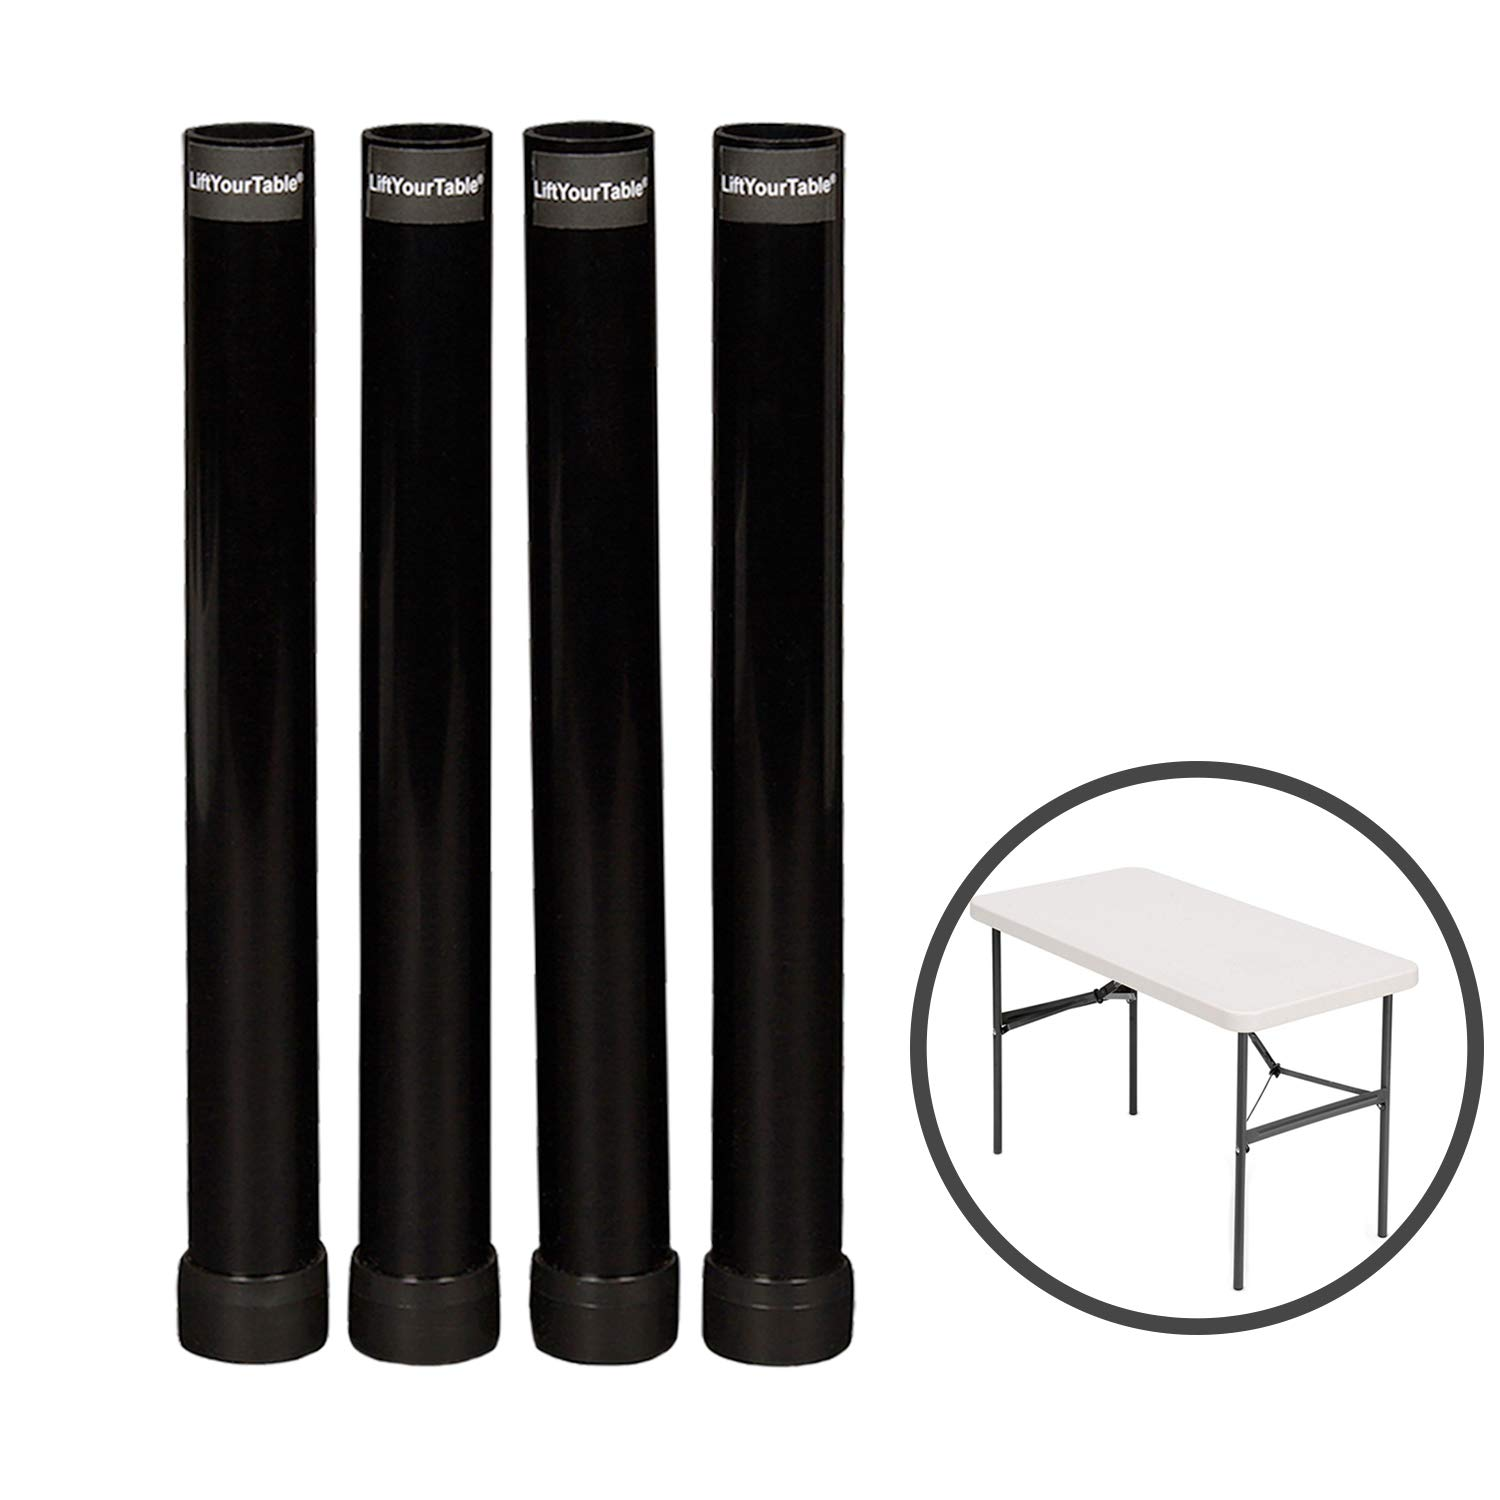 Lift Your Table Folding Table risers Extenders Straight Leg KIT. Save Your Back! (Kit for Folding Table You Already own) by Lift Your Table